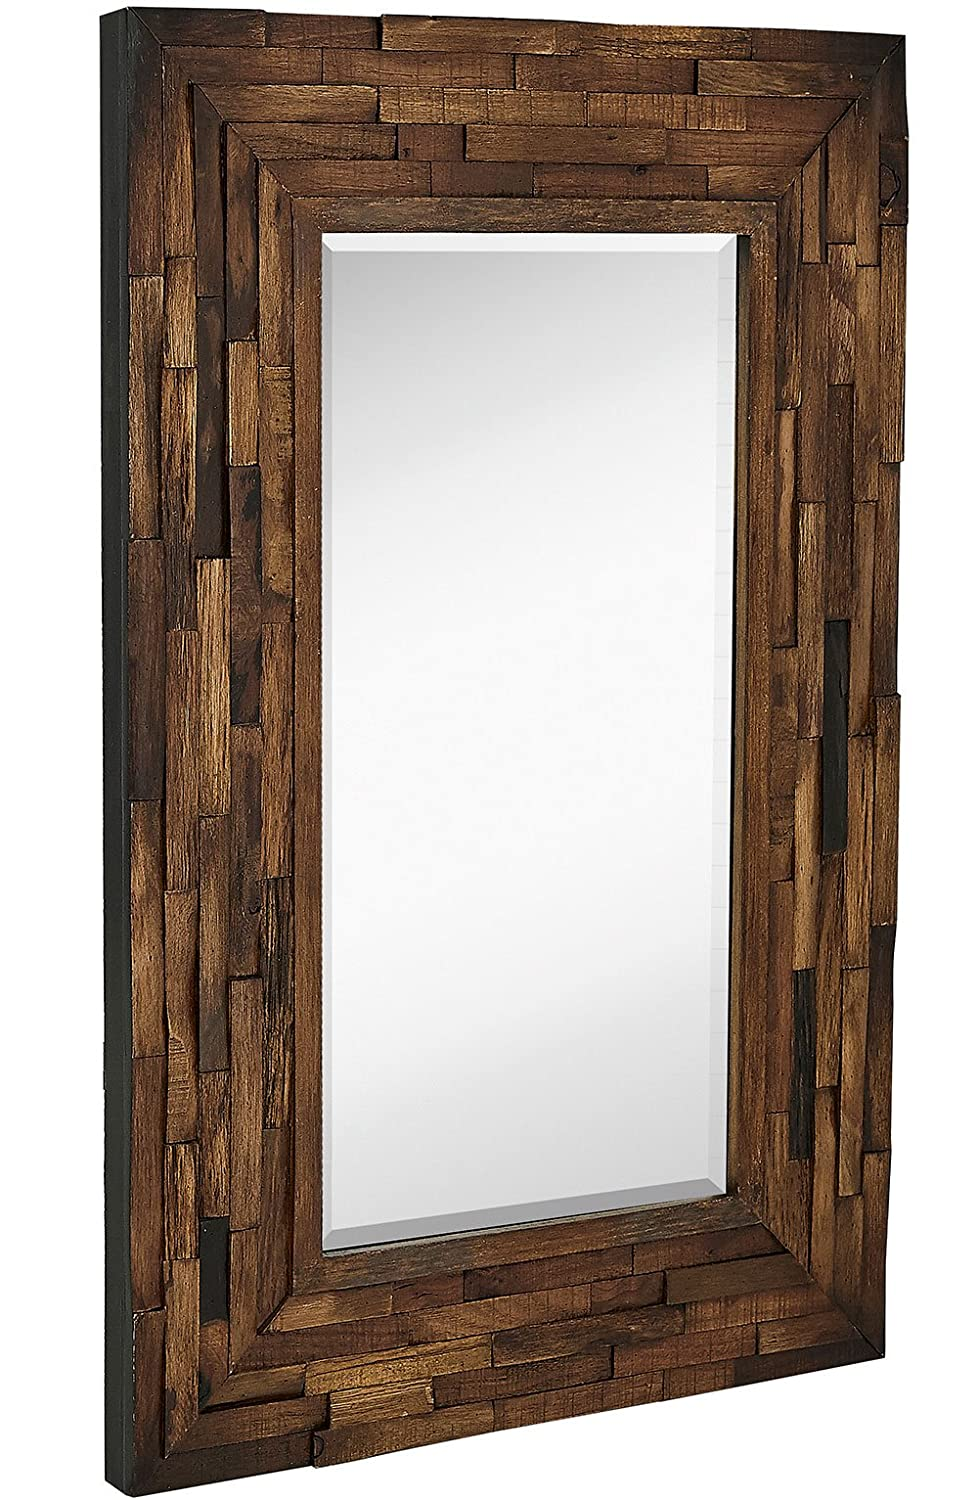 Amazon.com: Rustic Natural Wood Framed Wall Mirror | Solid ...